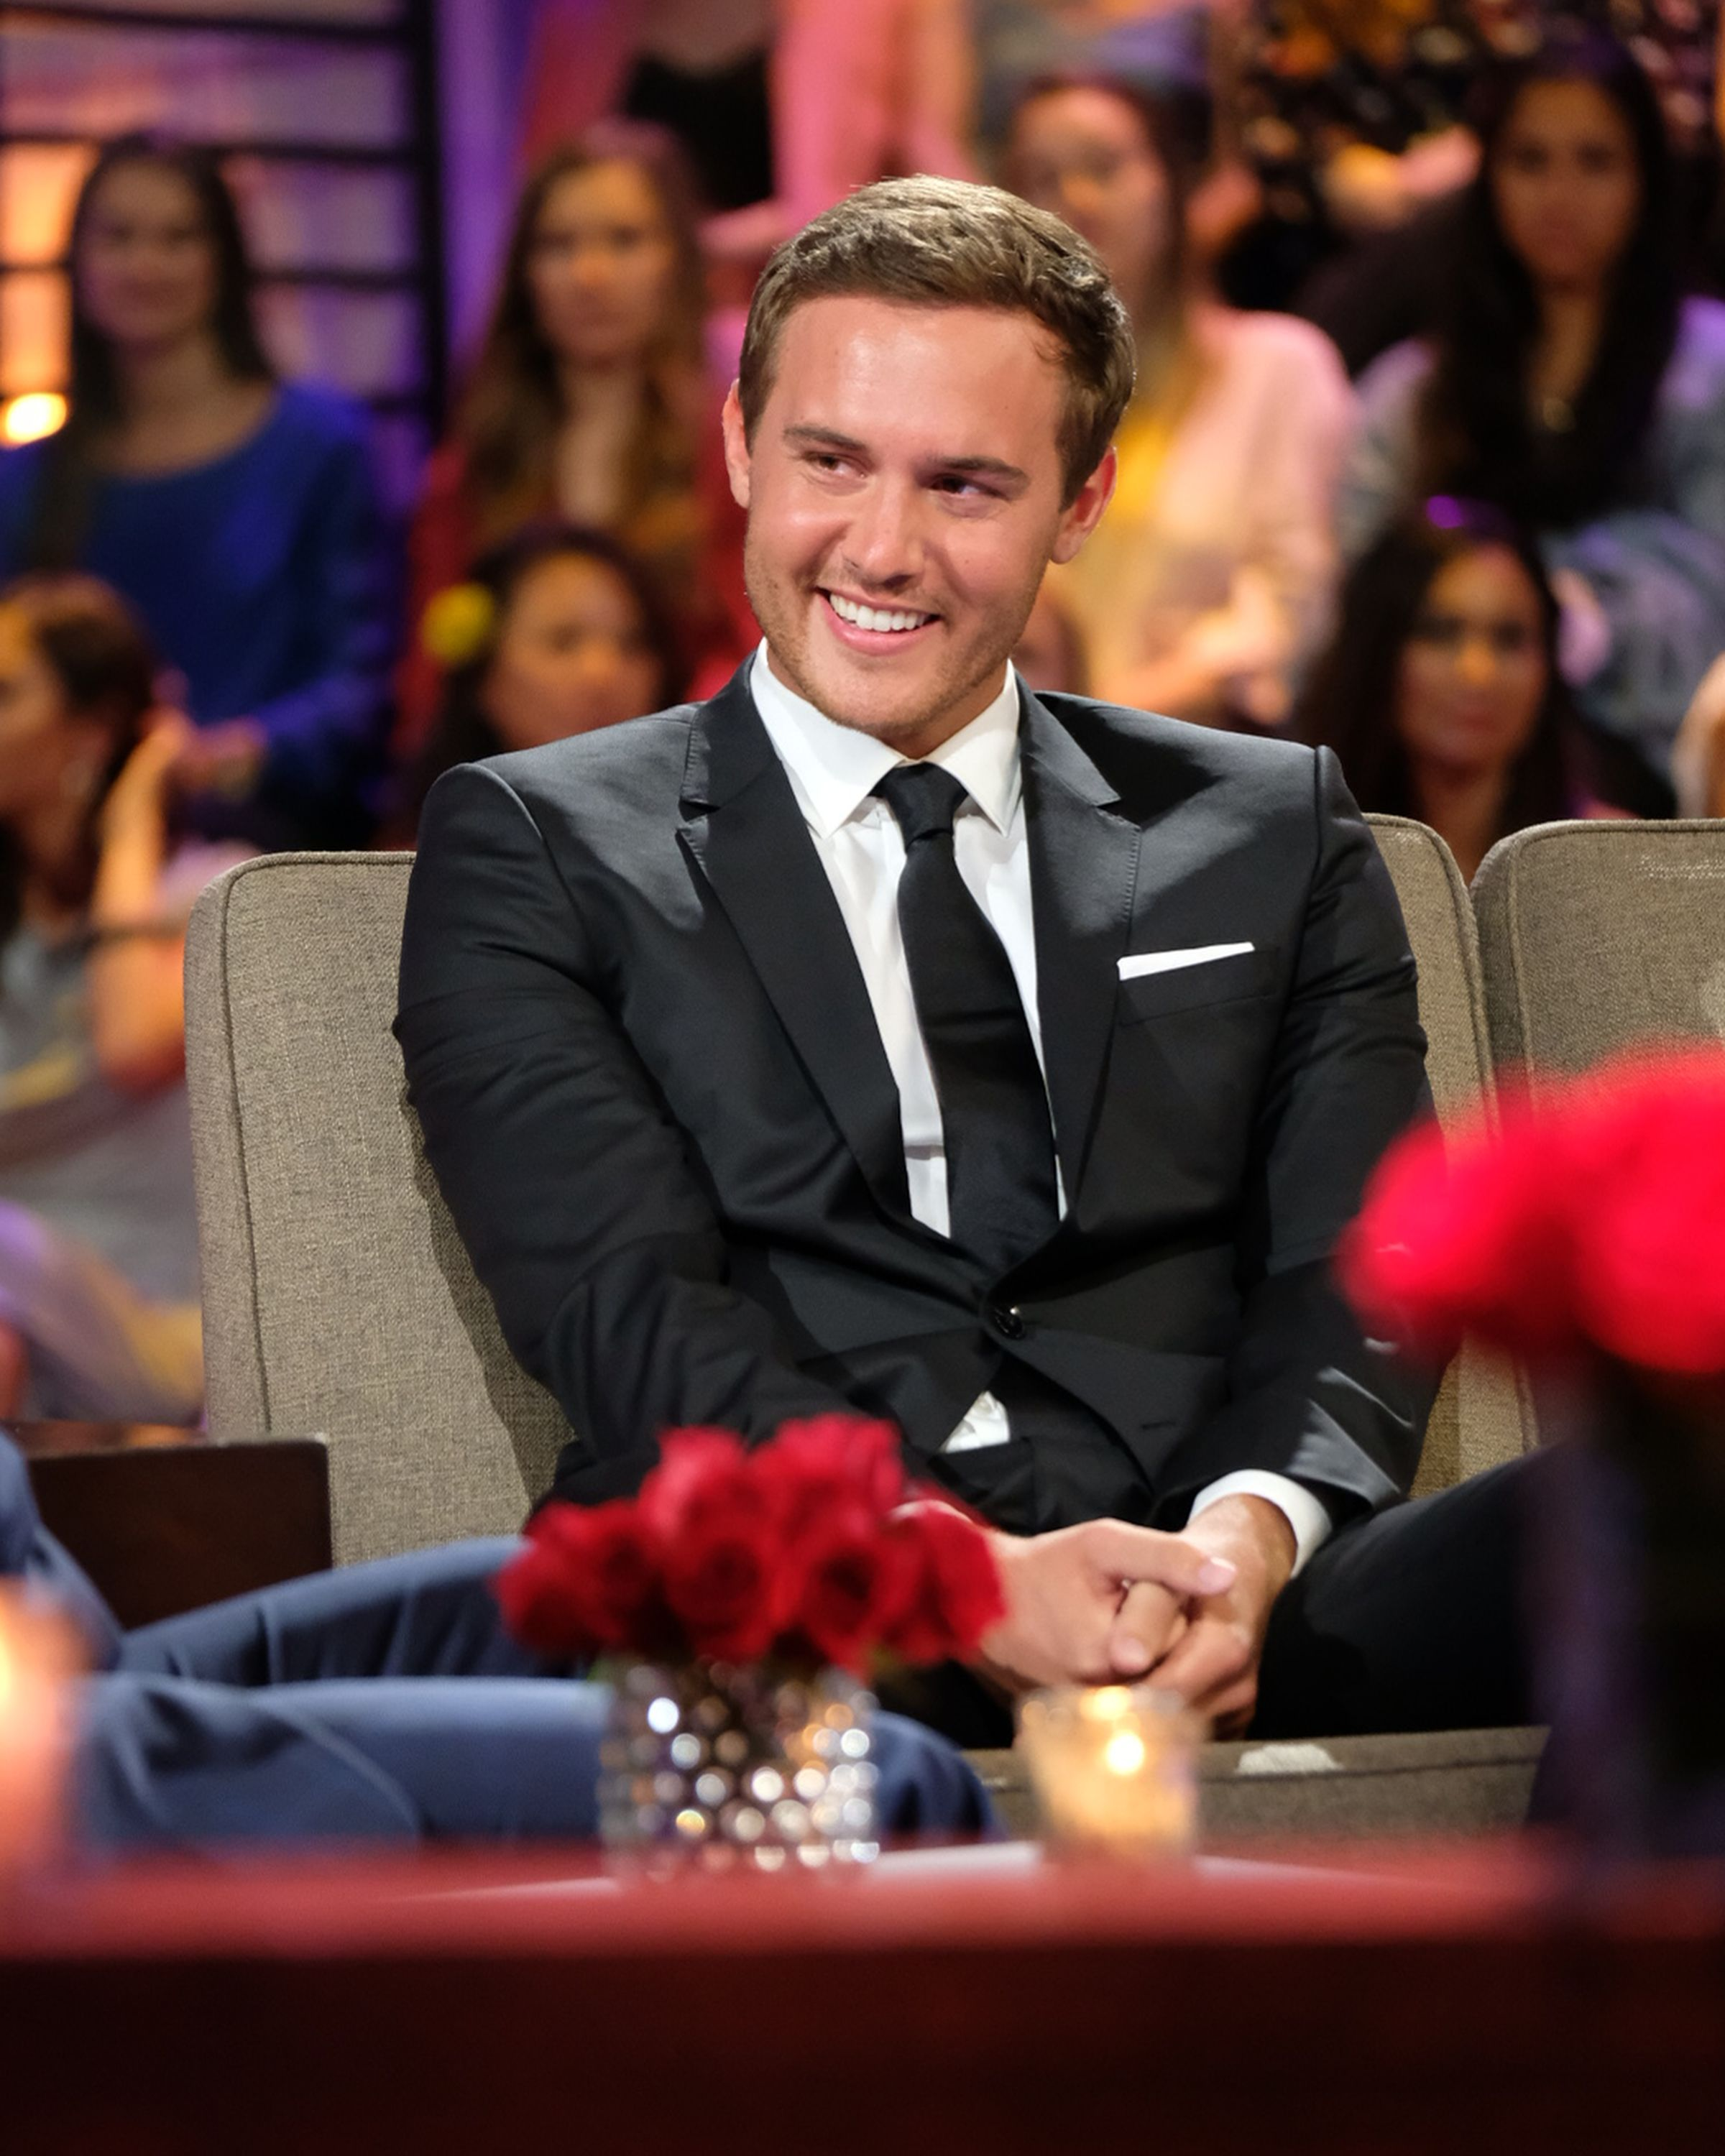 When Does Peter's 'The Bachelor' Season Air?